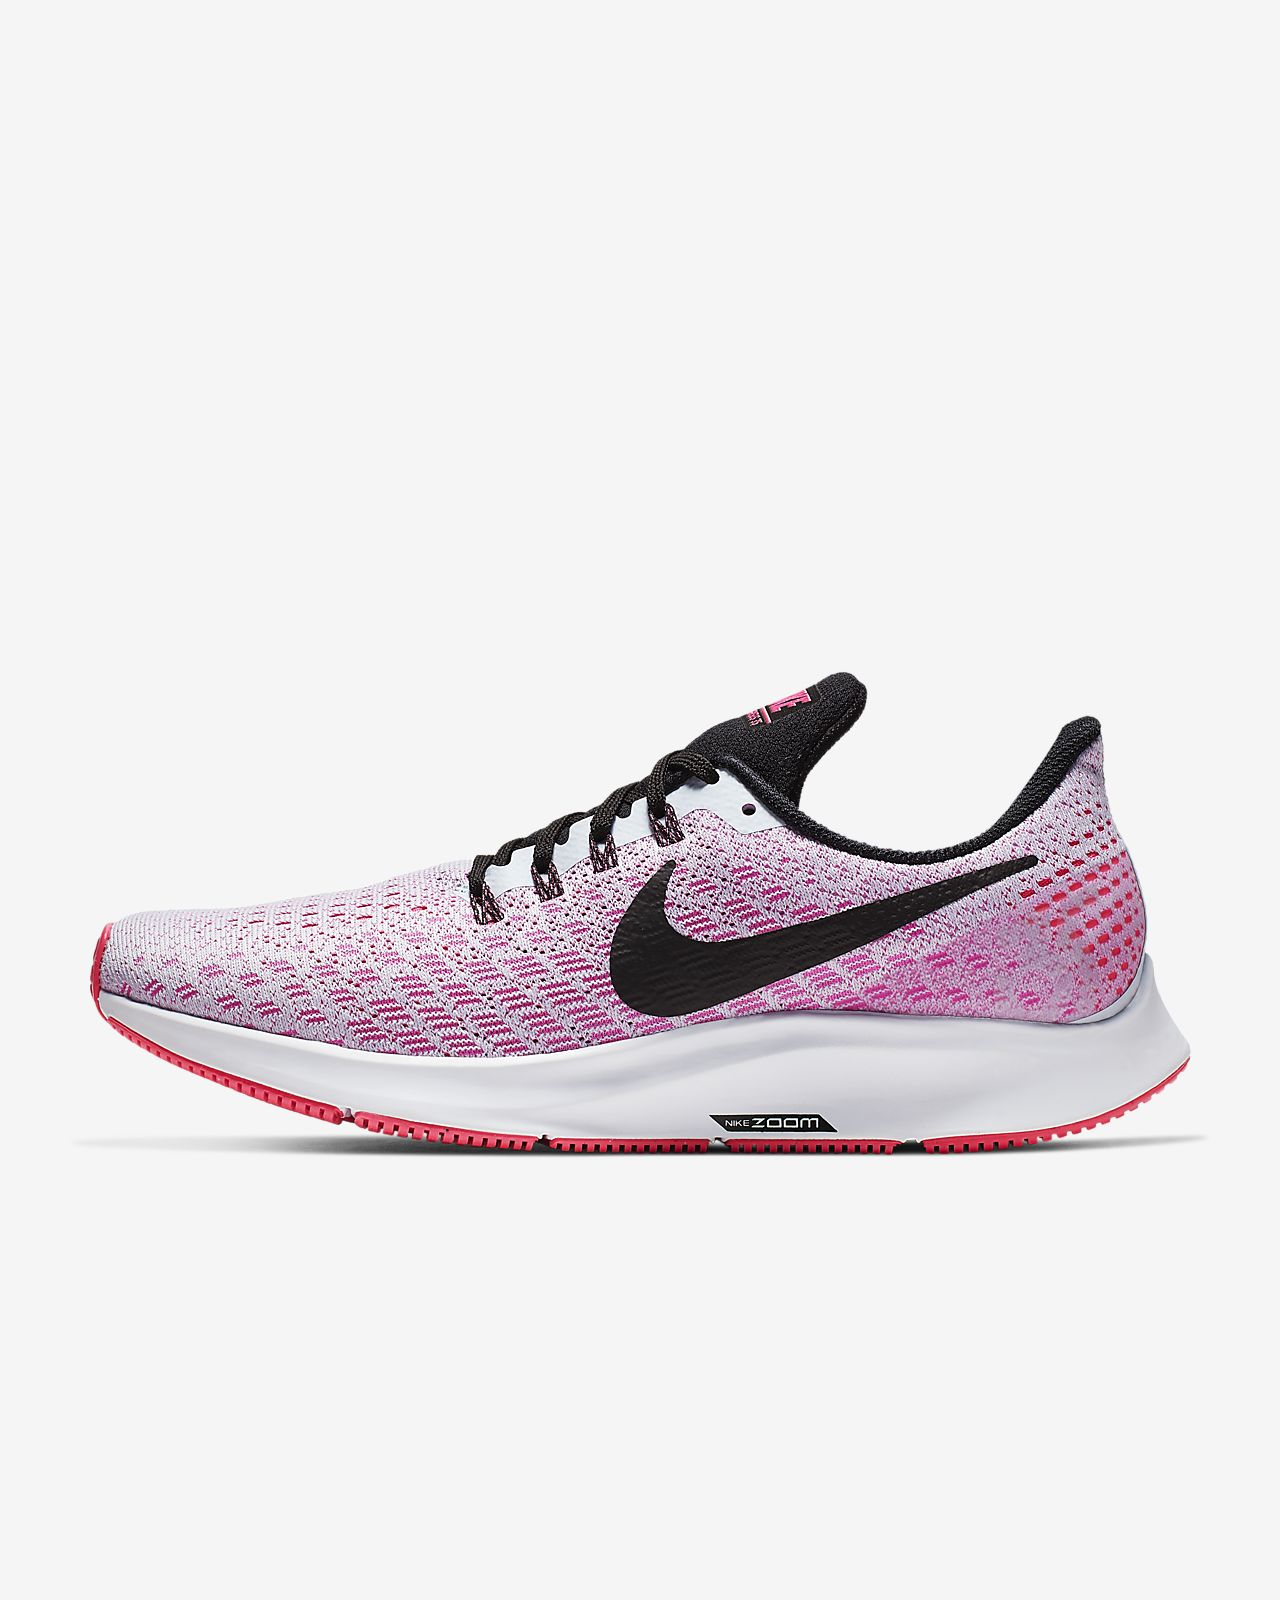 b1926d262 Nike Air Zoom Pegasus 35 Women s Running Shoe. Nike.com